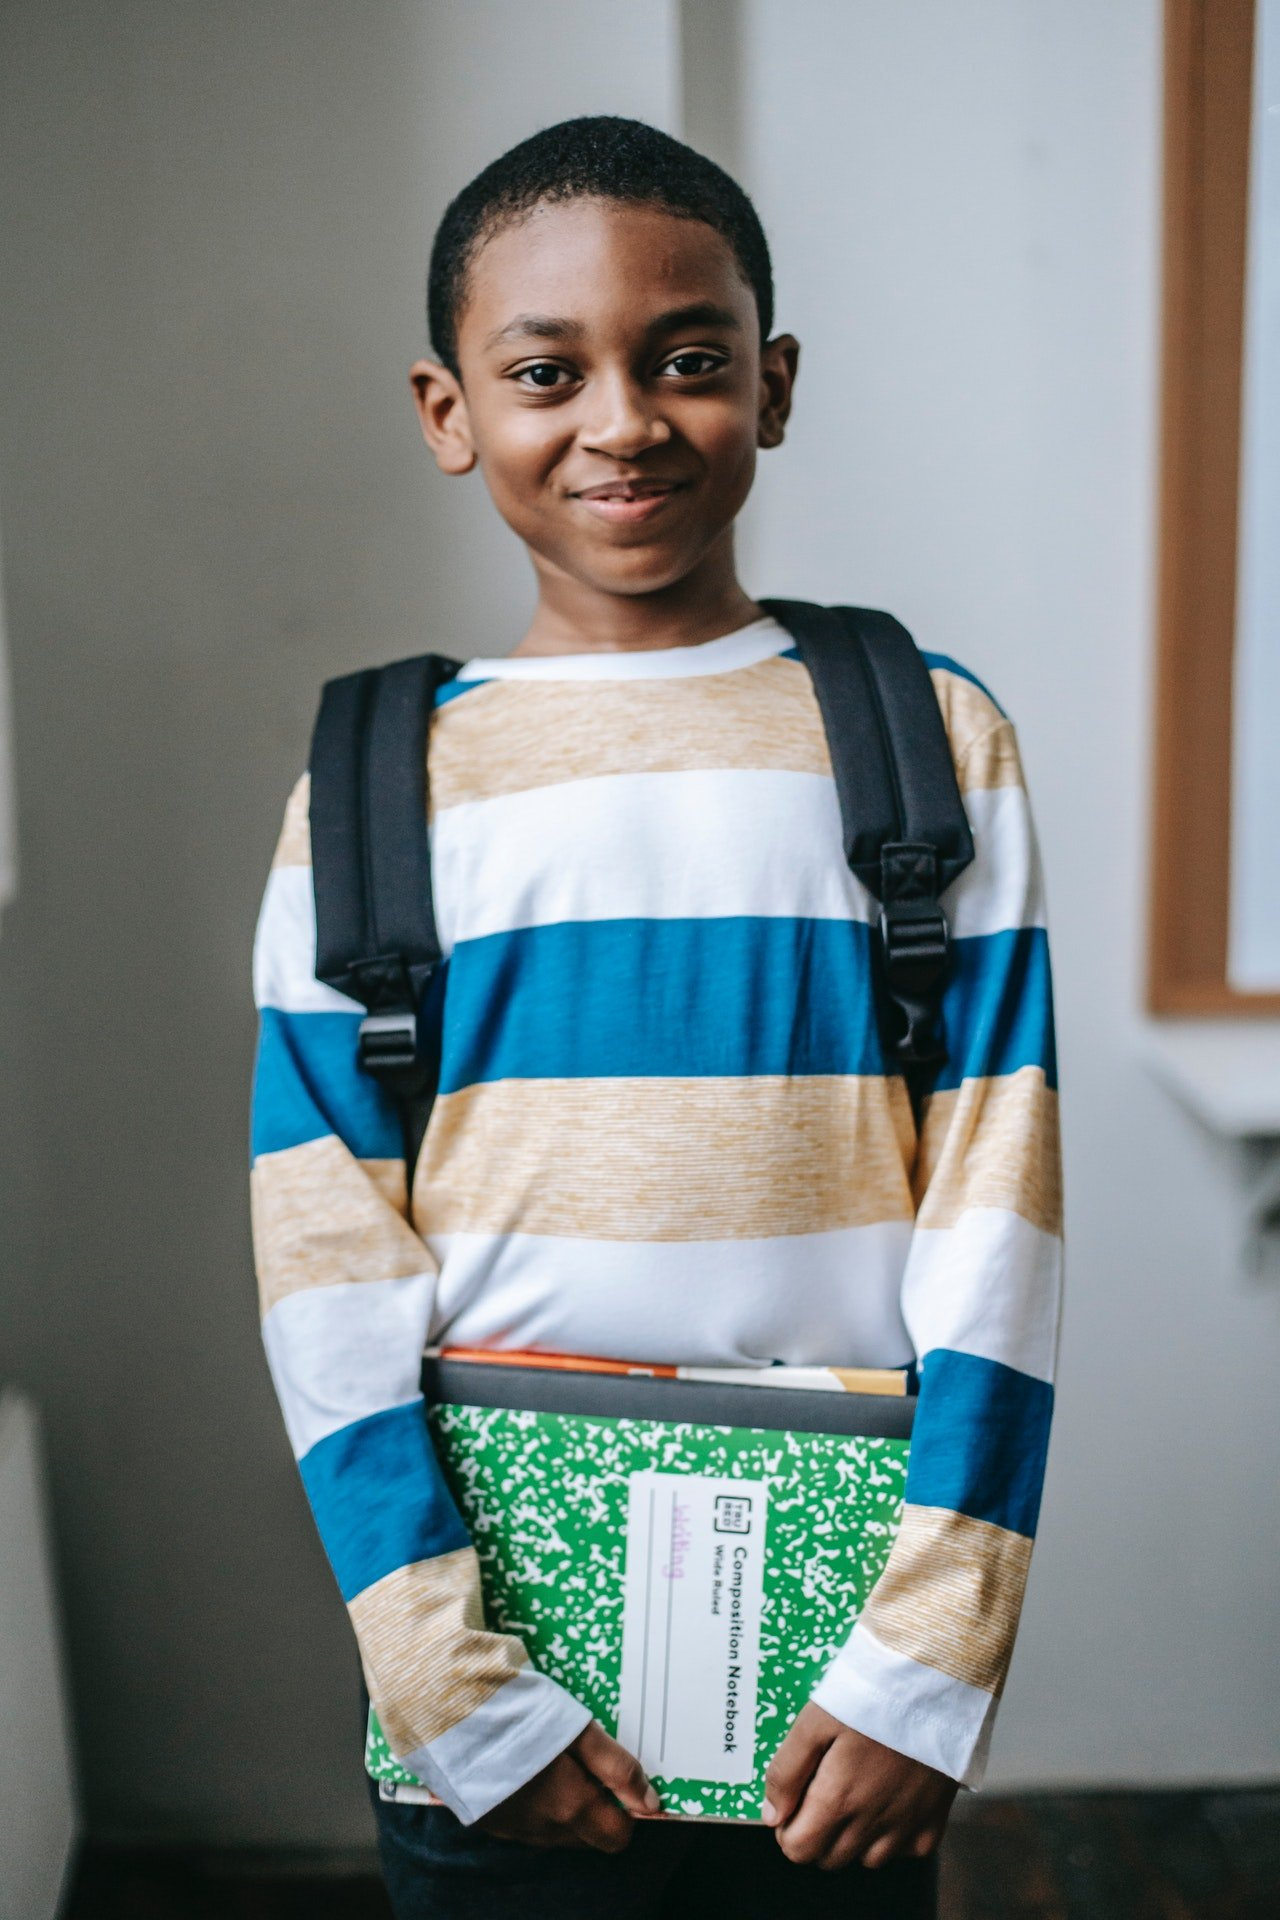 Photo of a young school boy smiling | Photo: Pexels